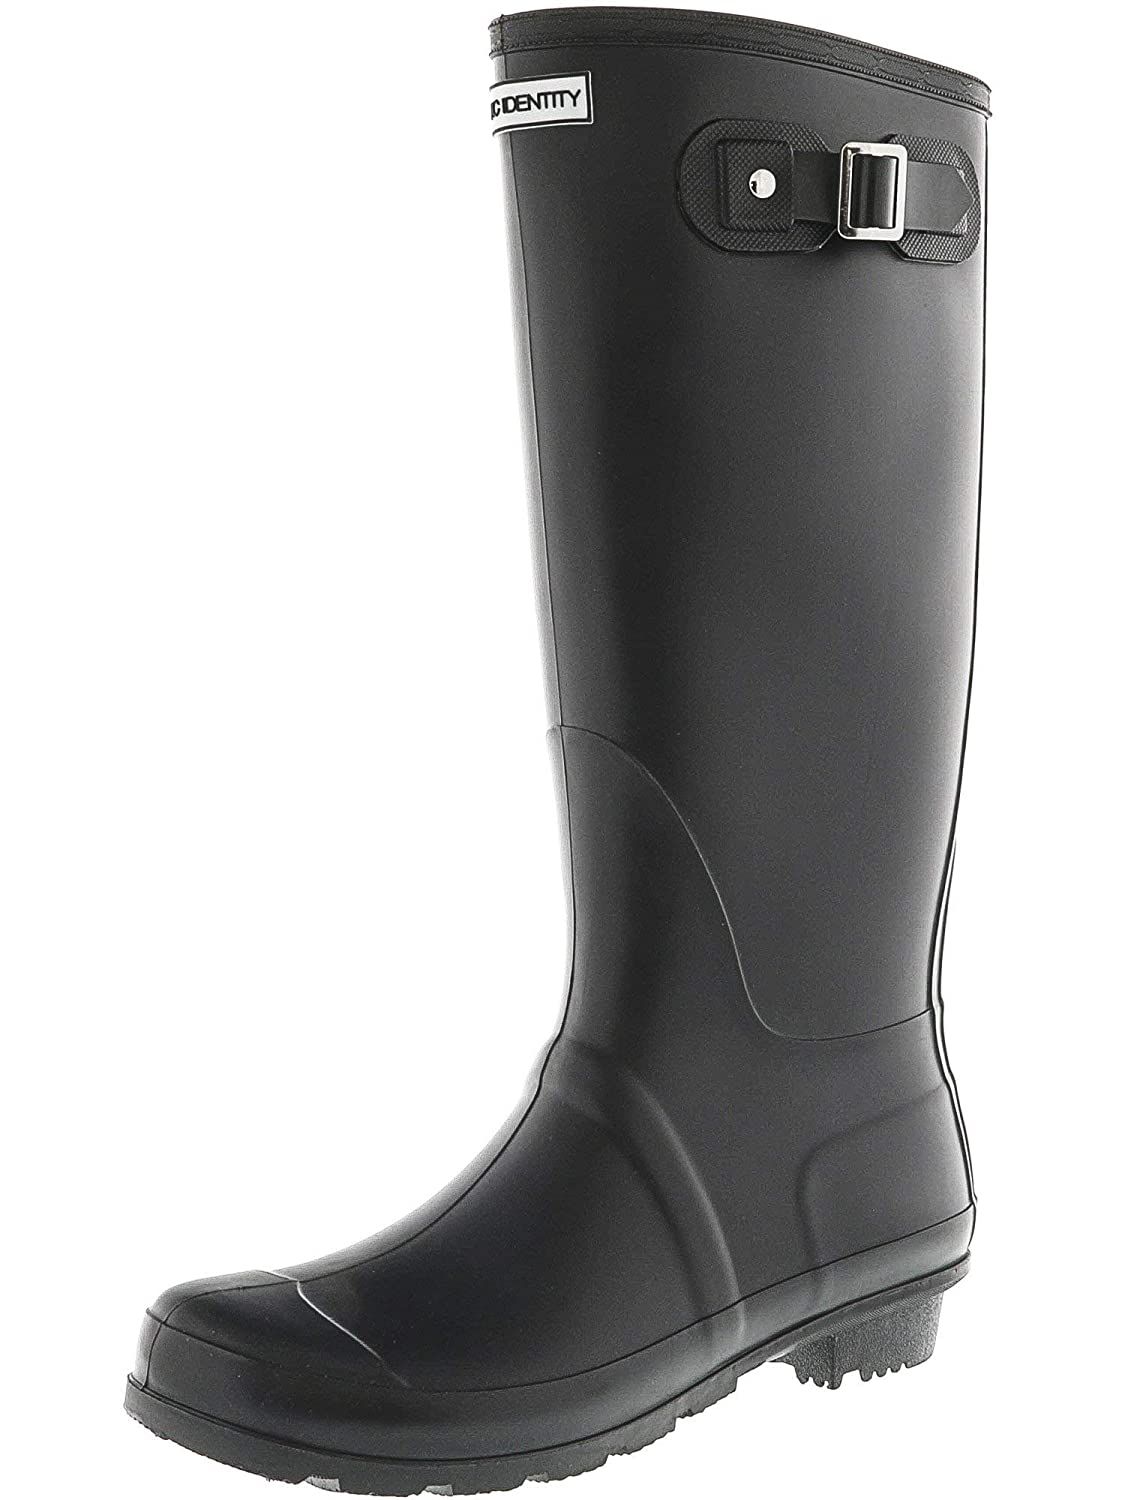 Matte Black Exotic Identity Original Tall Rain Boots